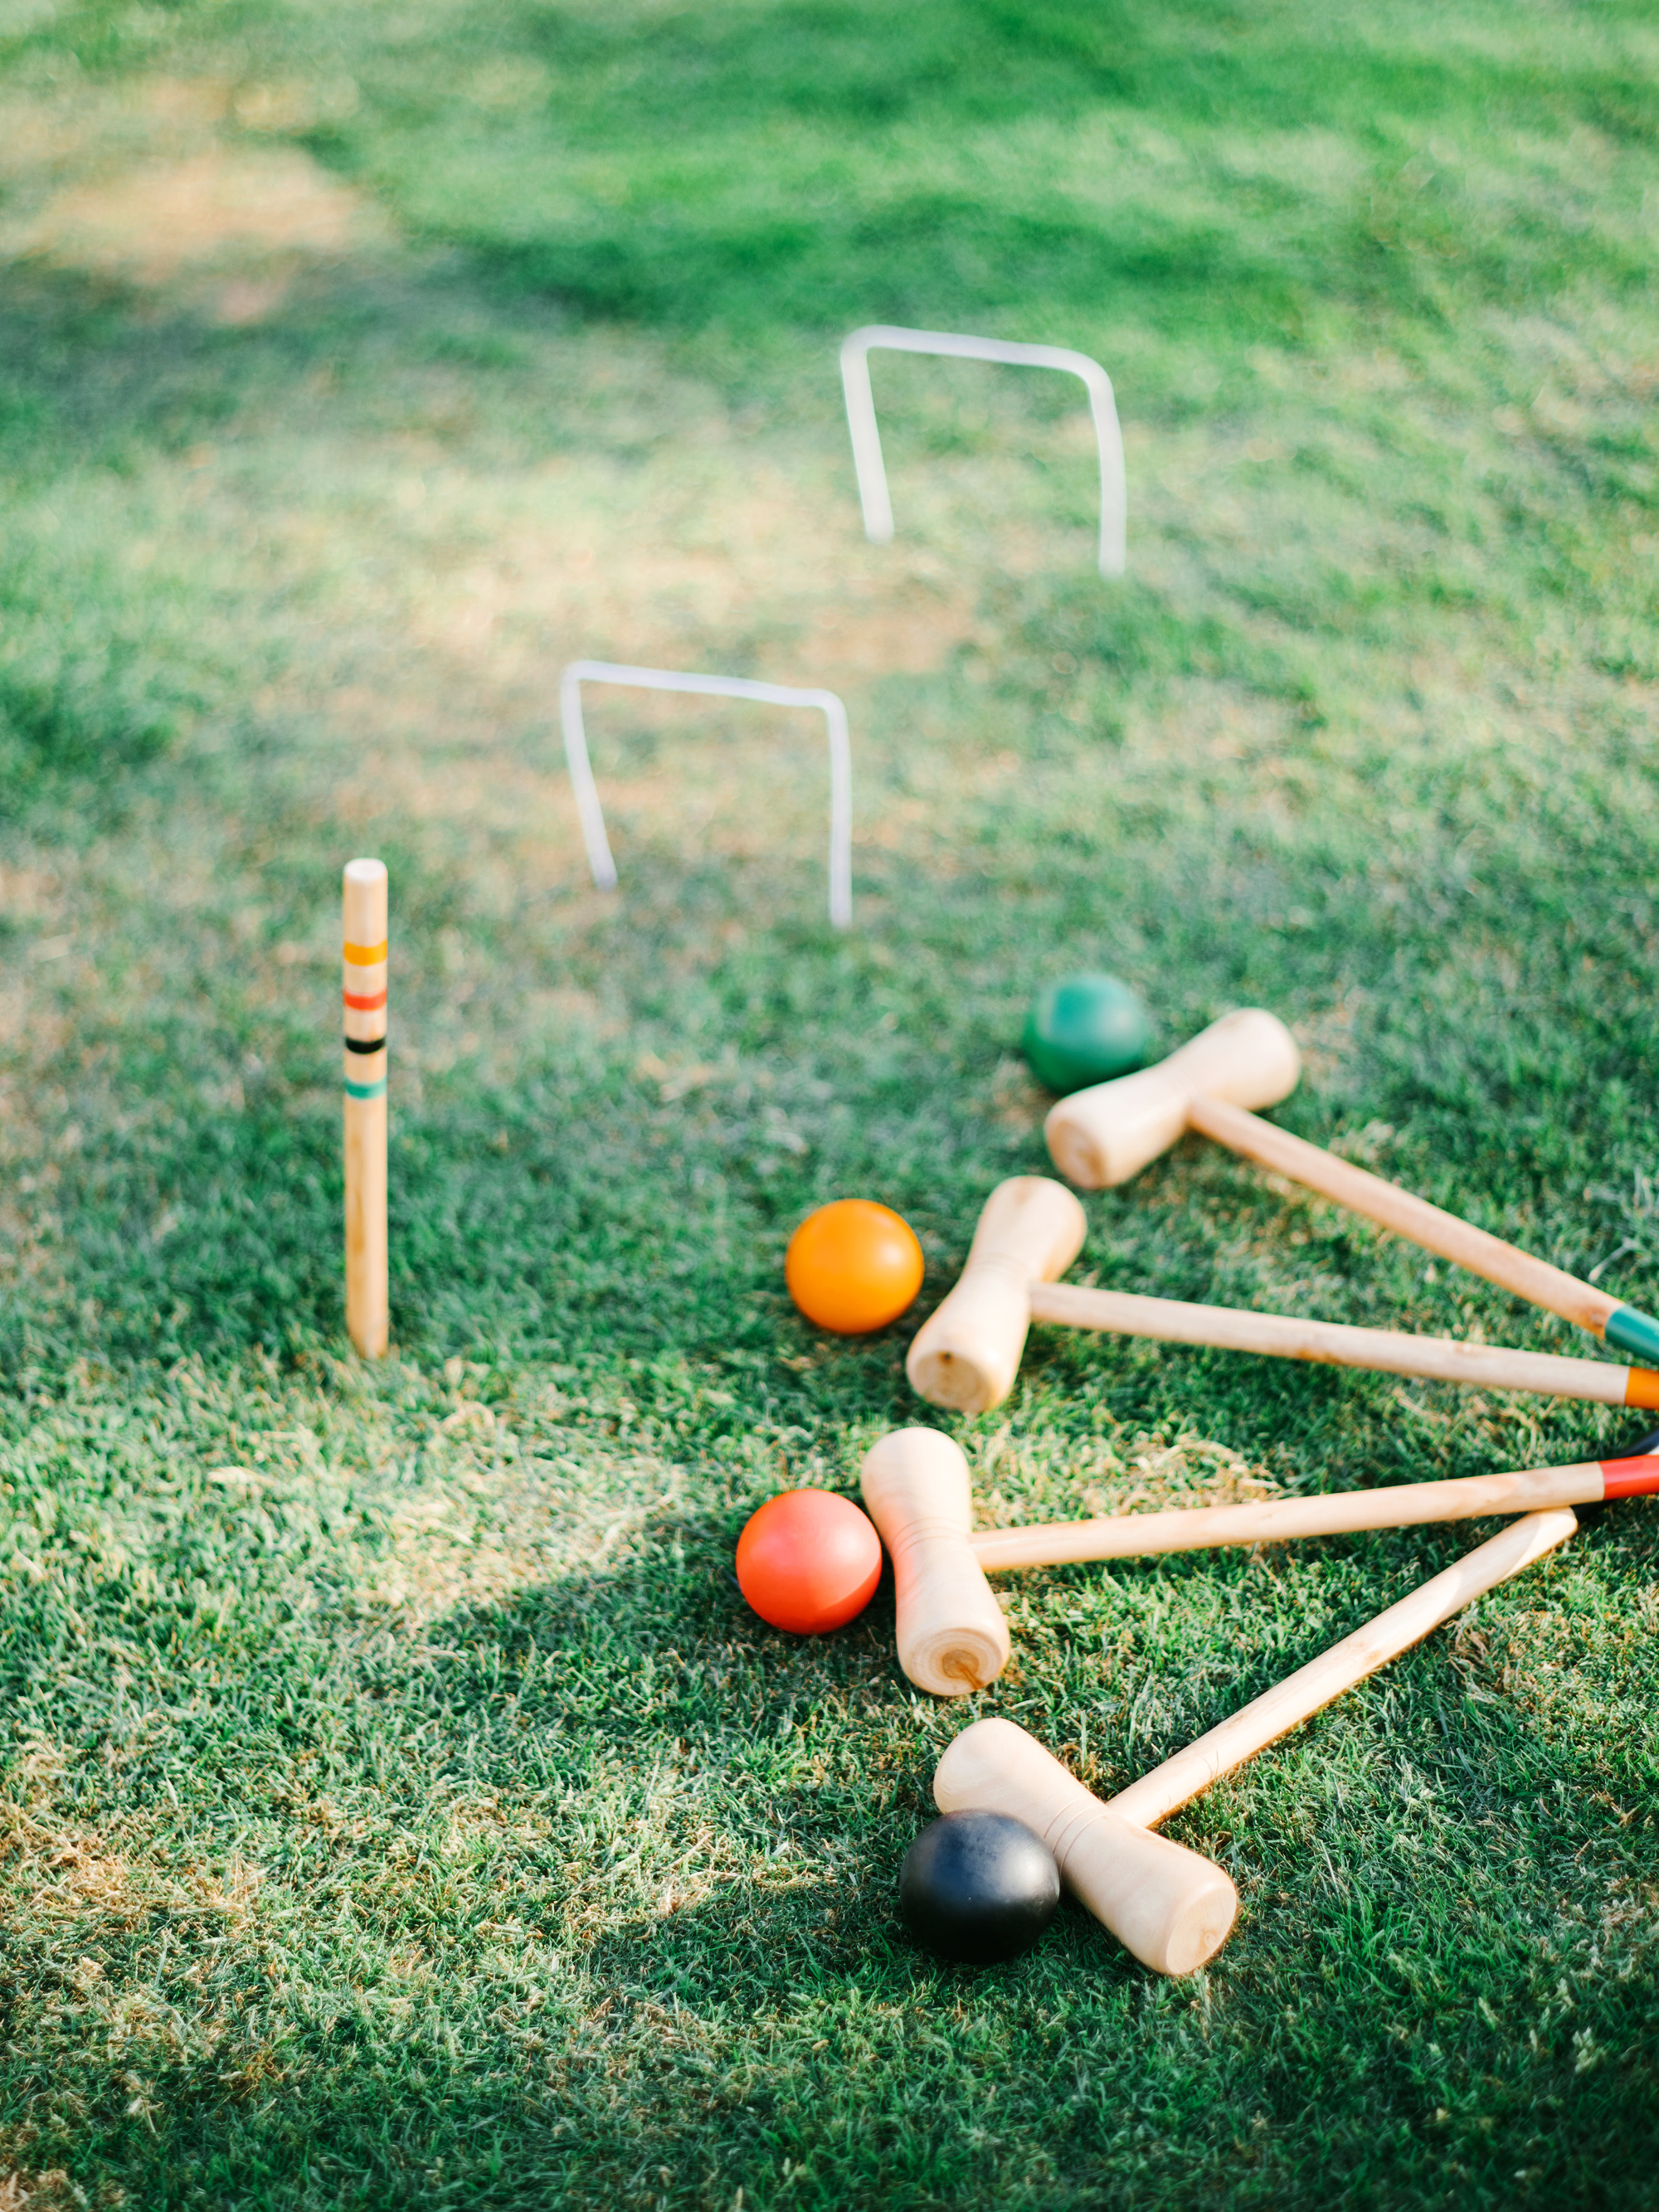 cavin david wedding croquet yard game